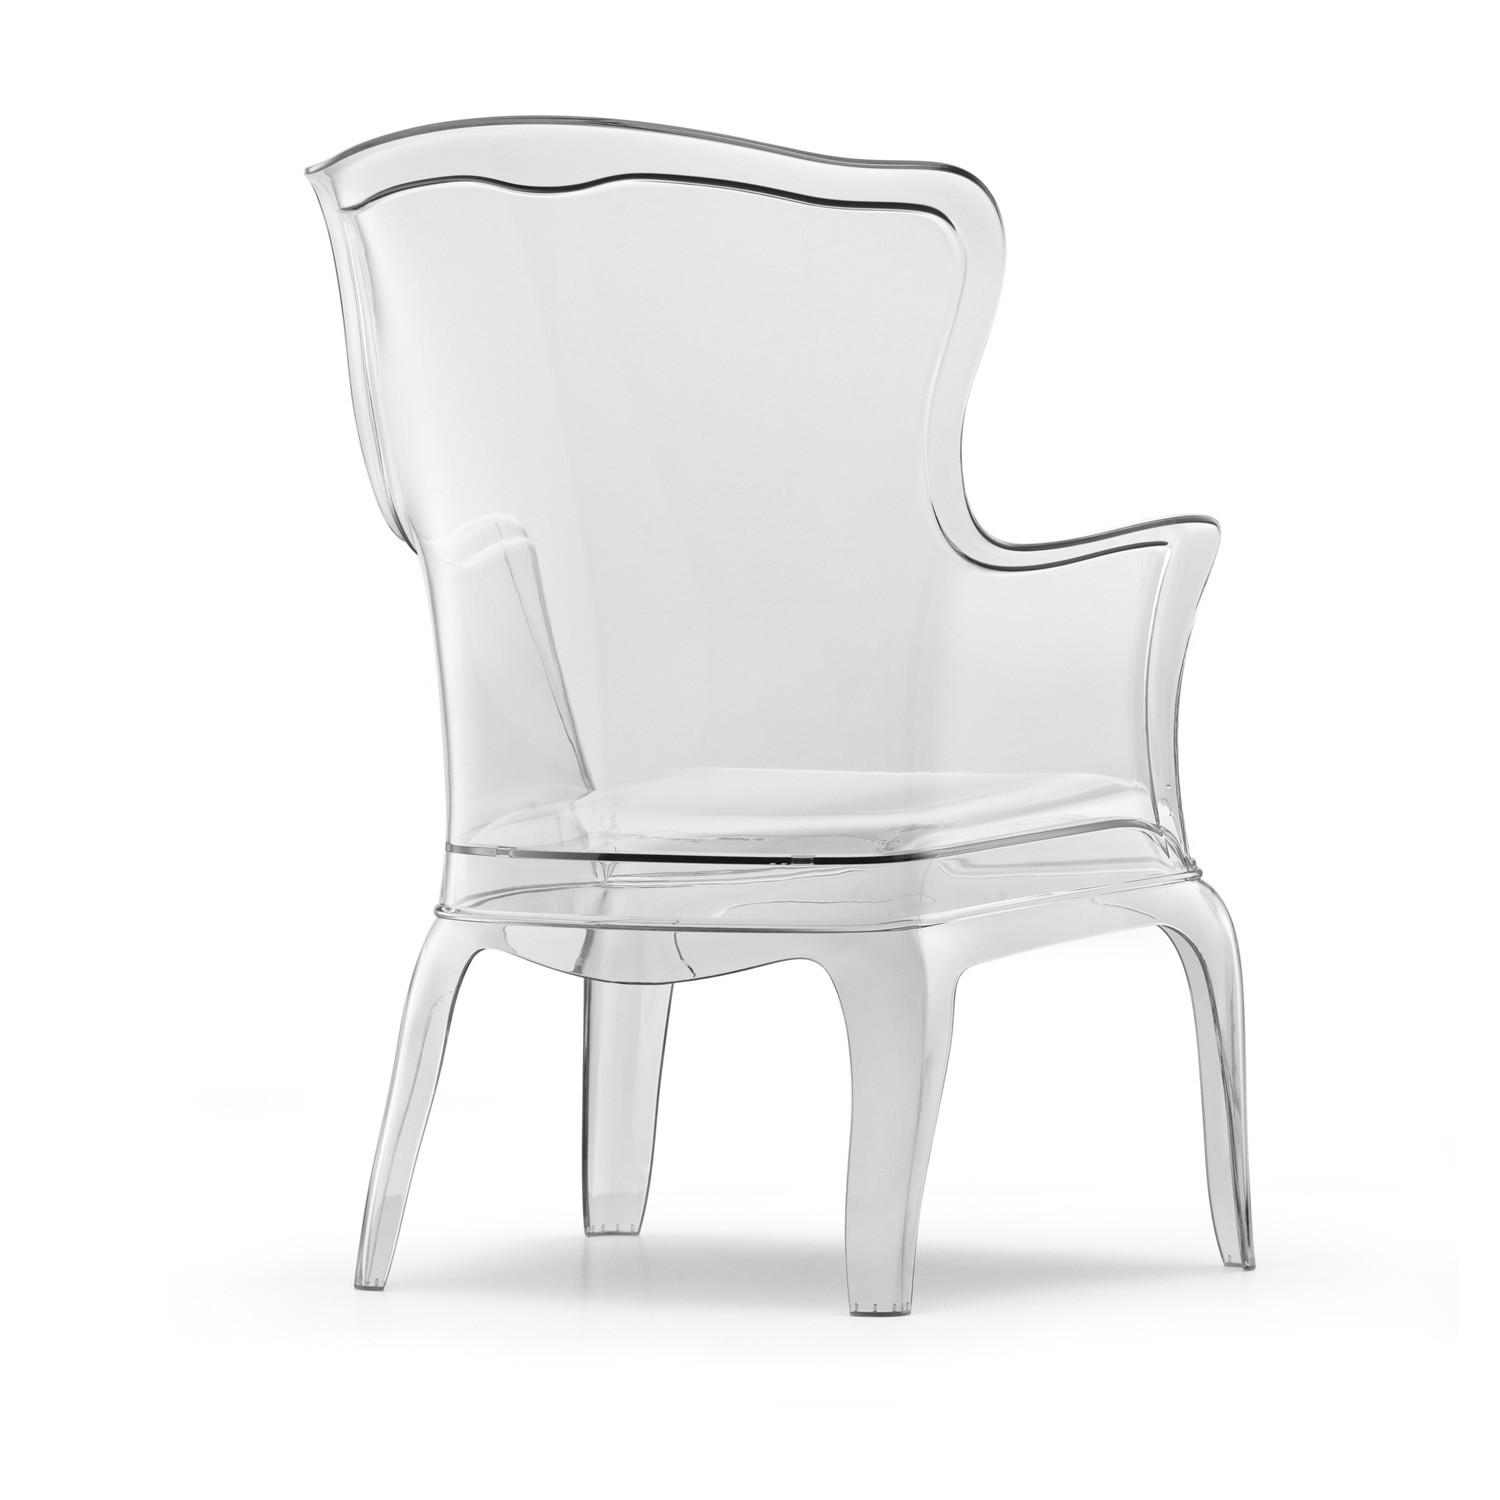 Pasha Lounge Reception Armchair